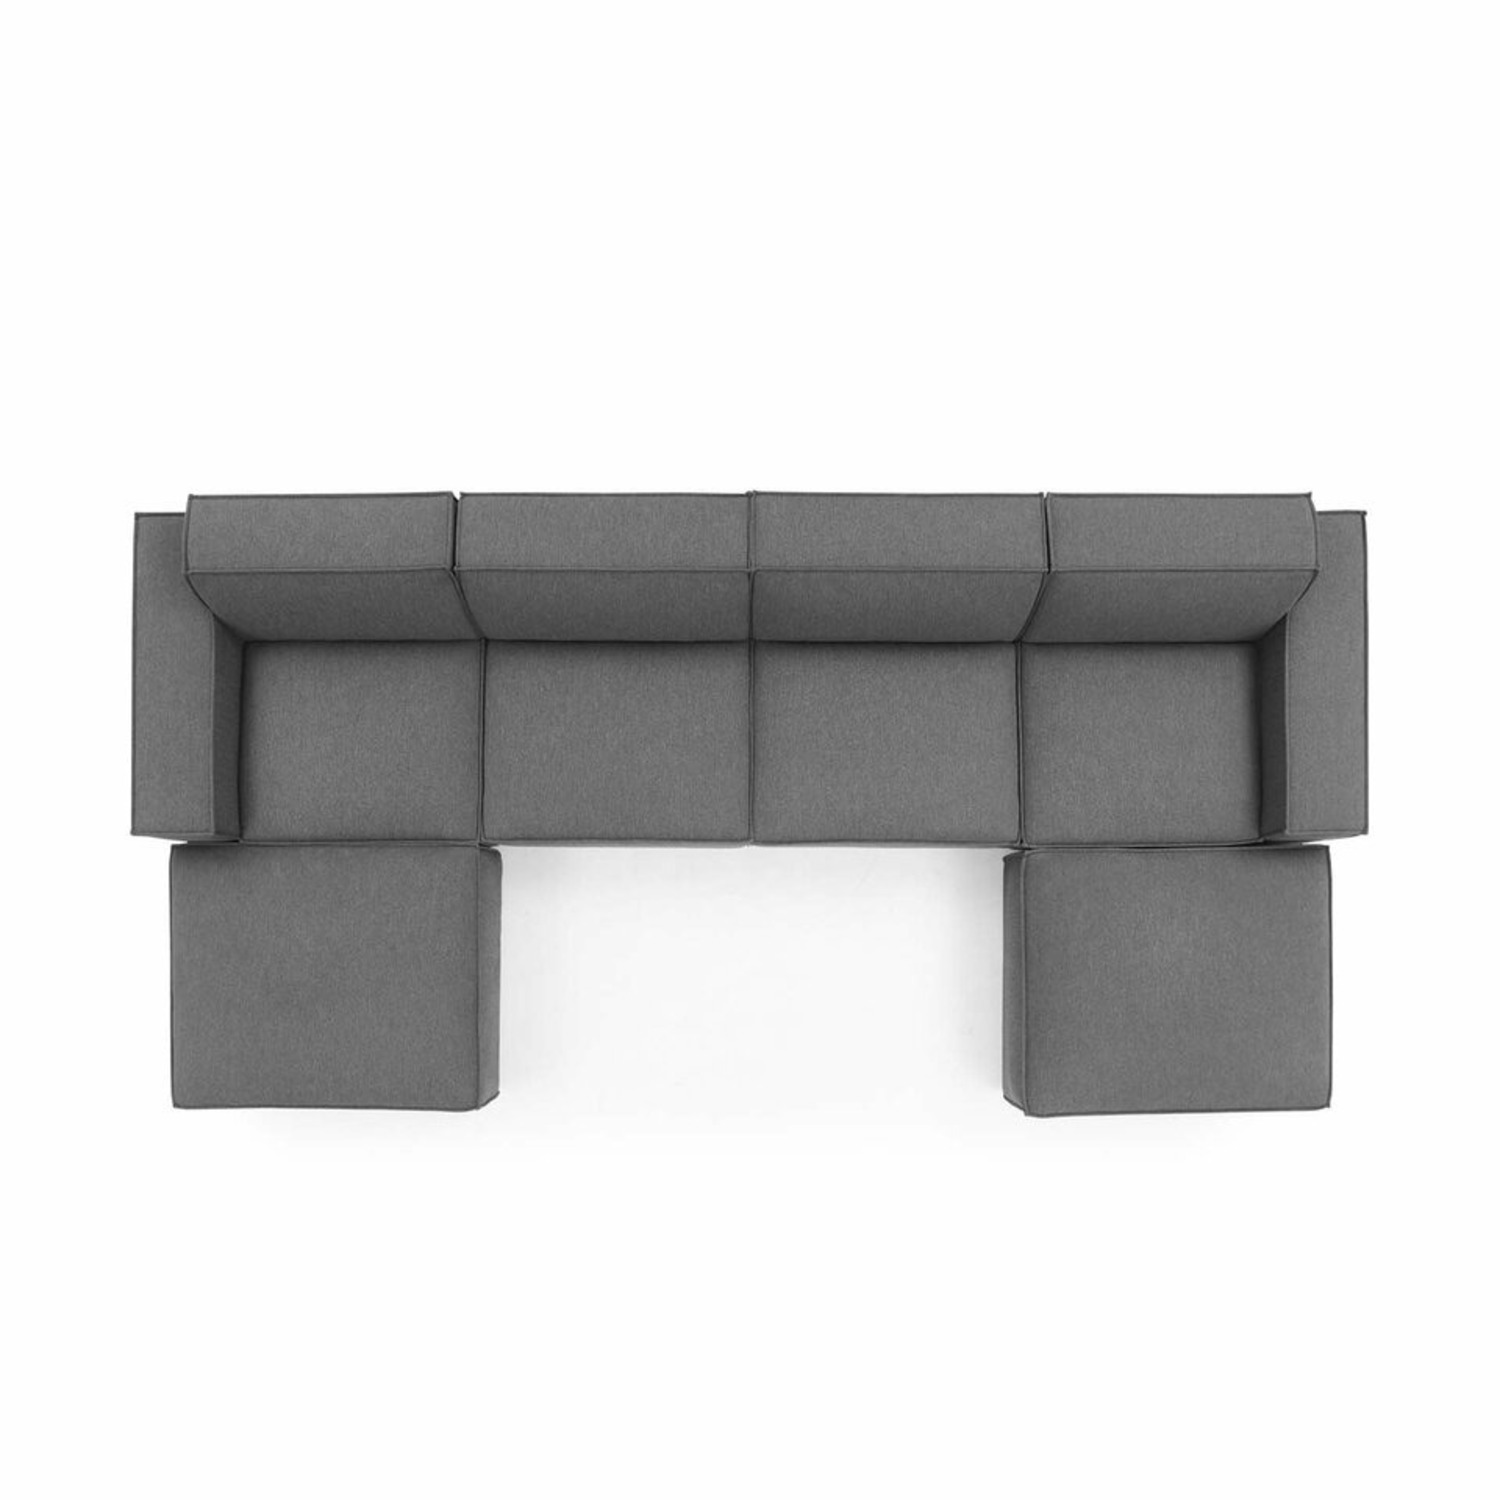 6-Piece Sectional Sofa In Charcoal Upholstery - image-1